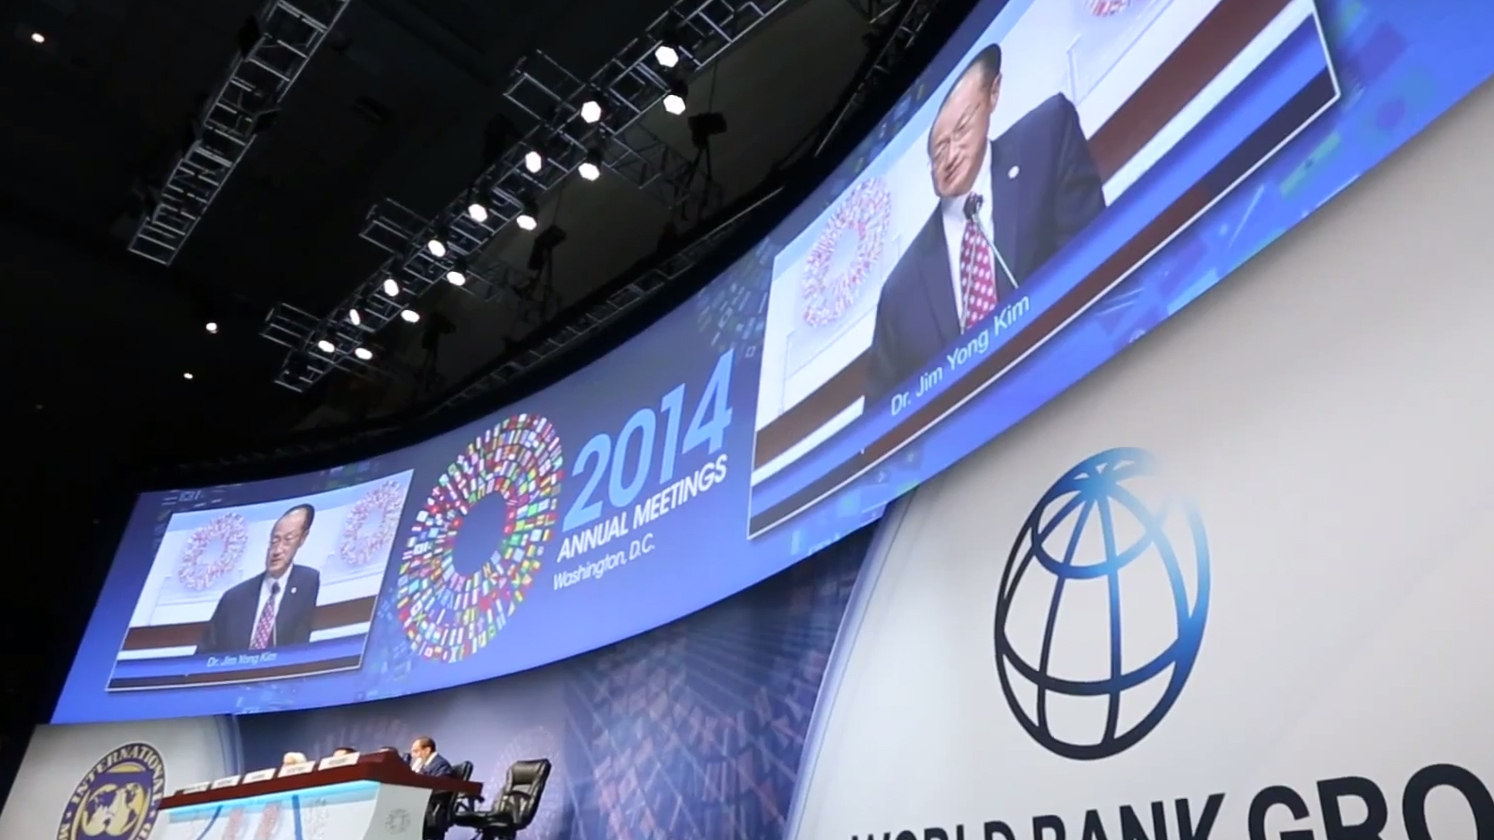 Conquering the World's Risks: Highlights from the Annual Meetings 2014